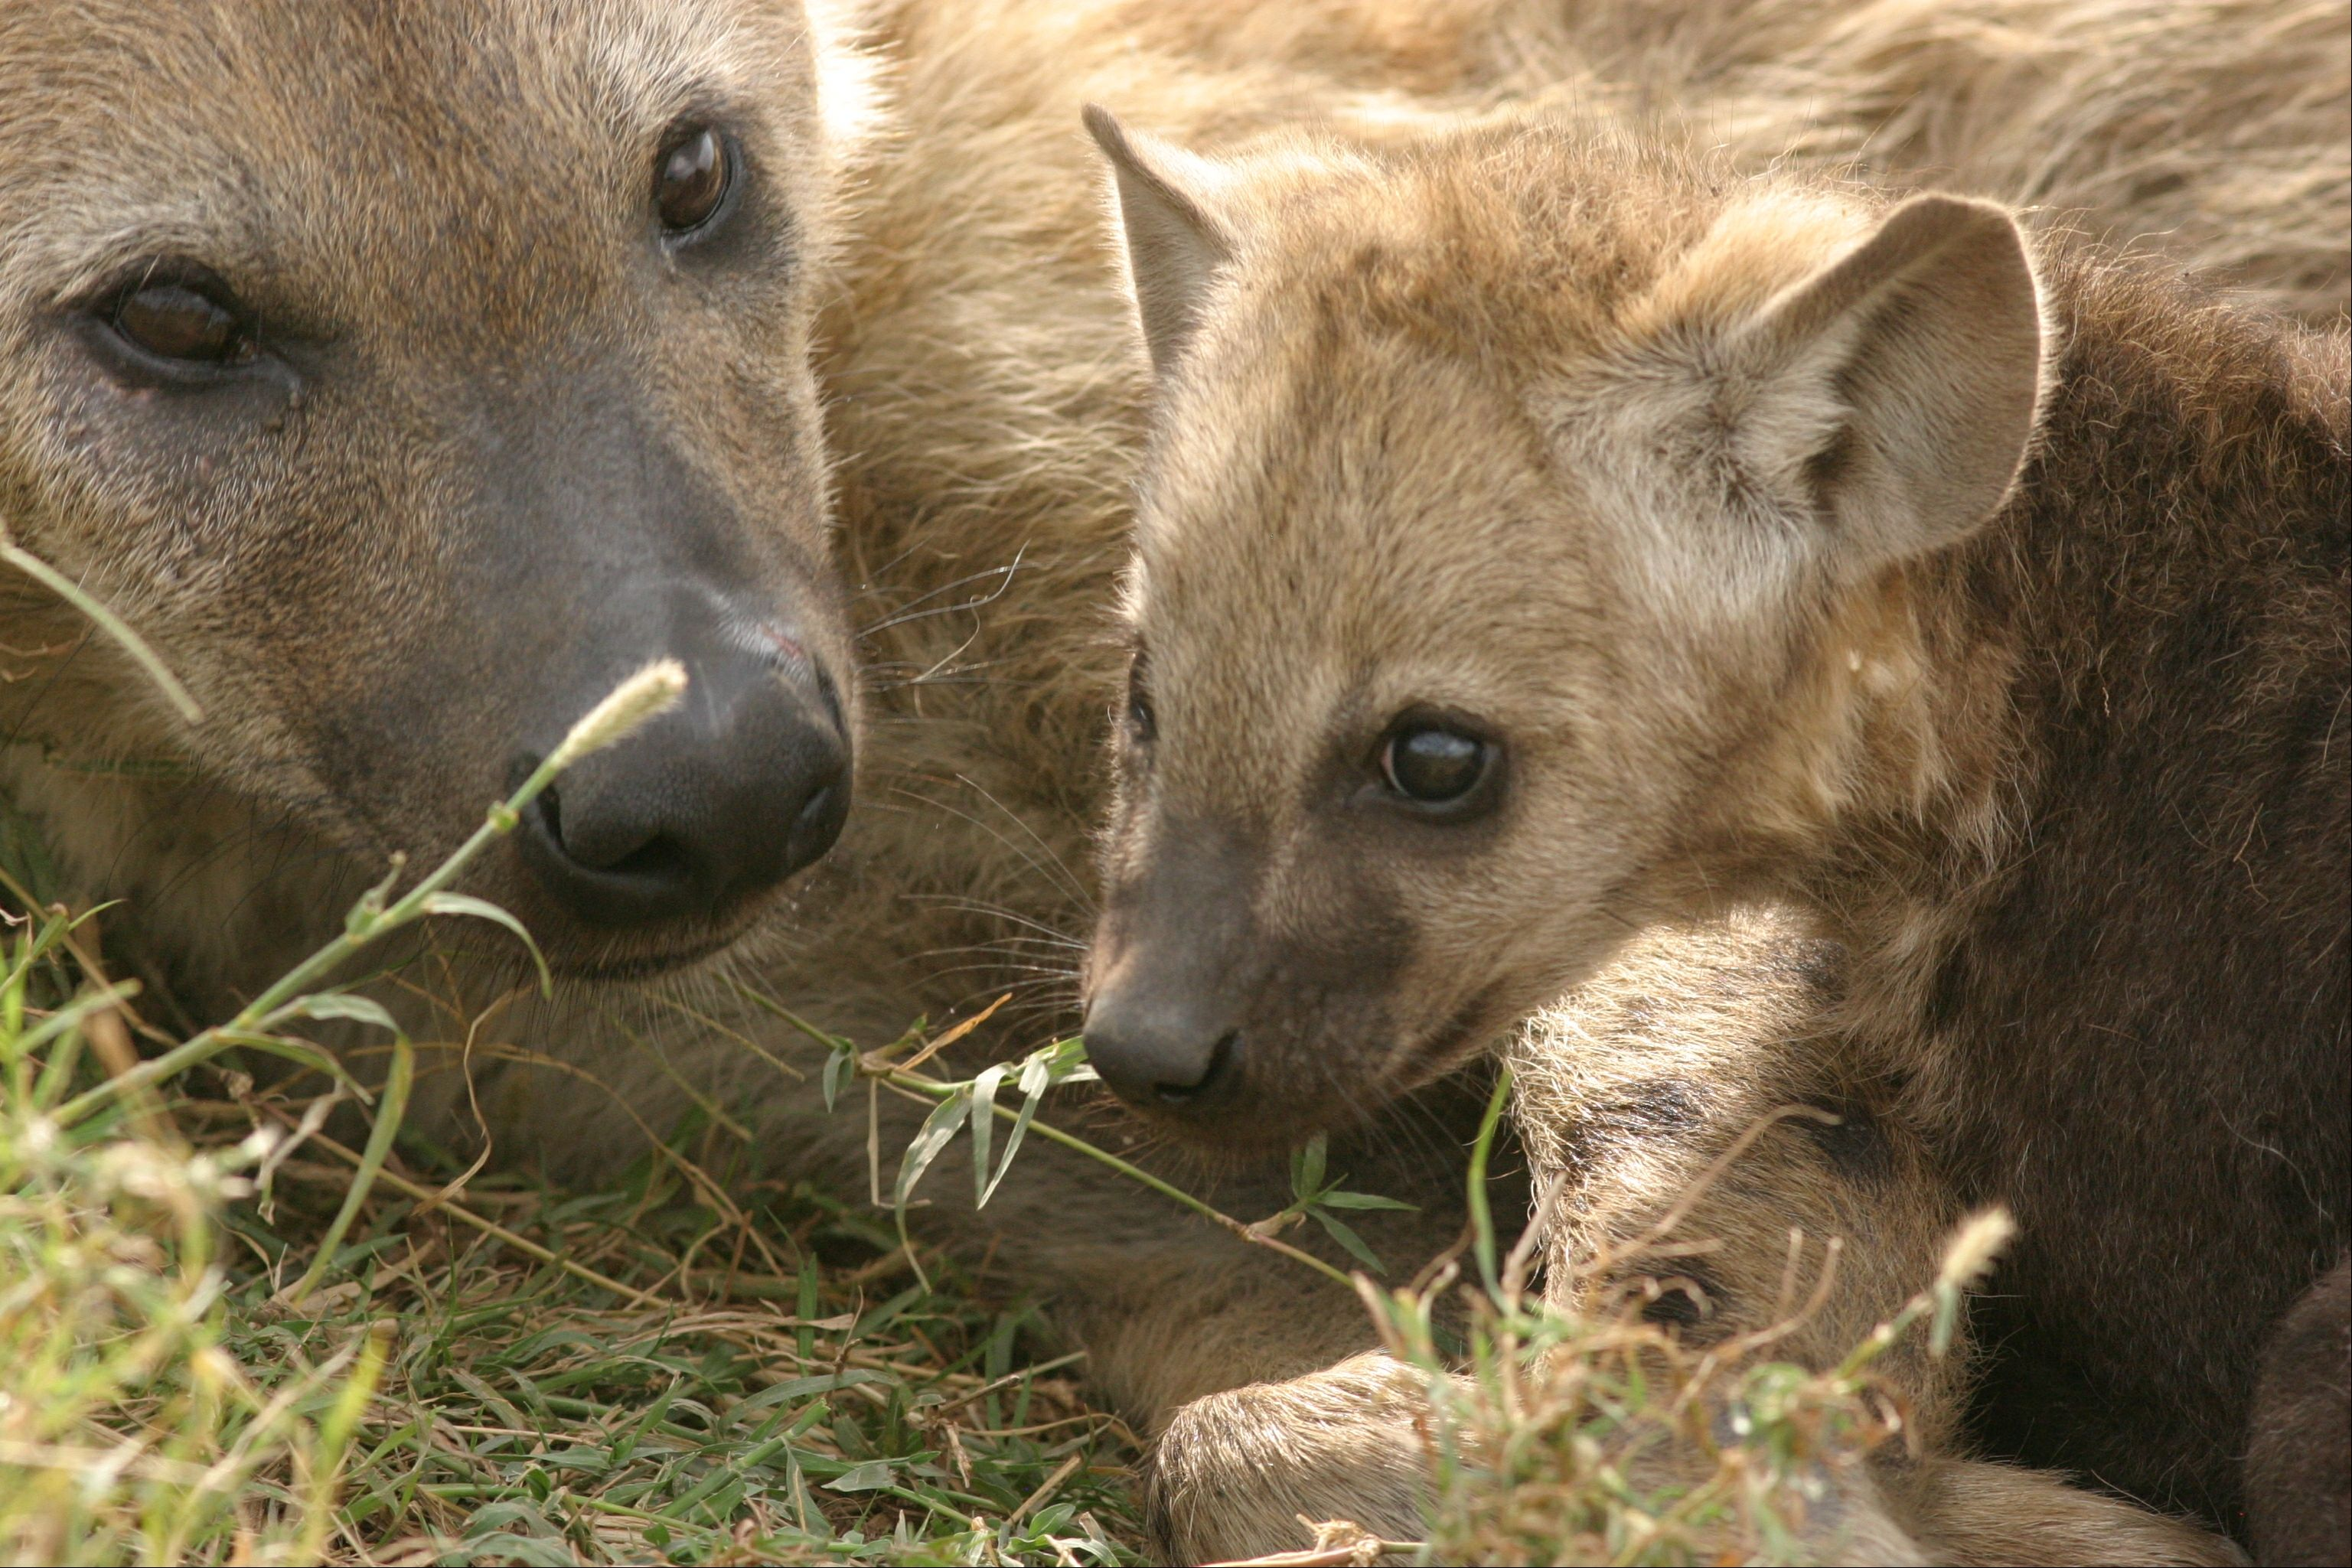 Spotted hyenas live in groups called clans. Clans, which